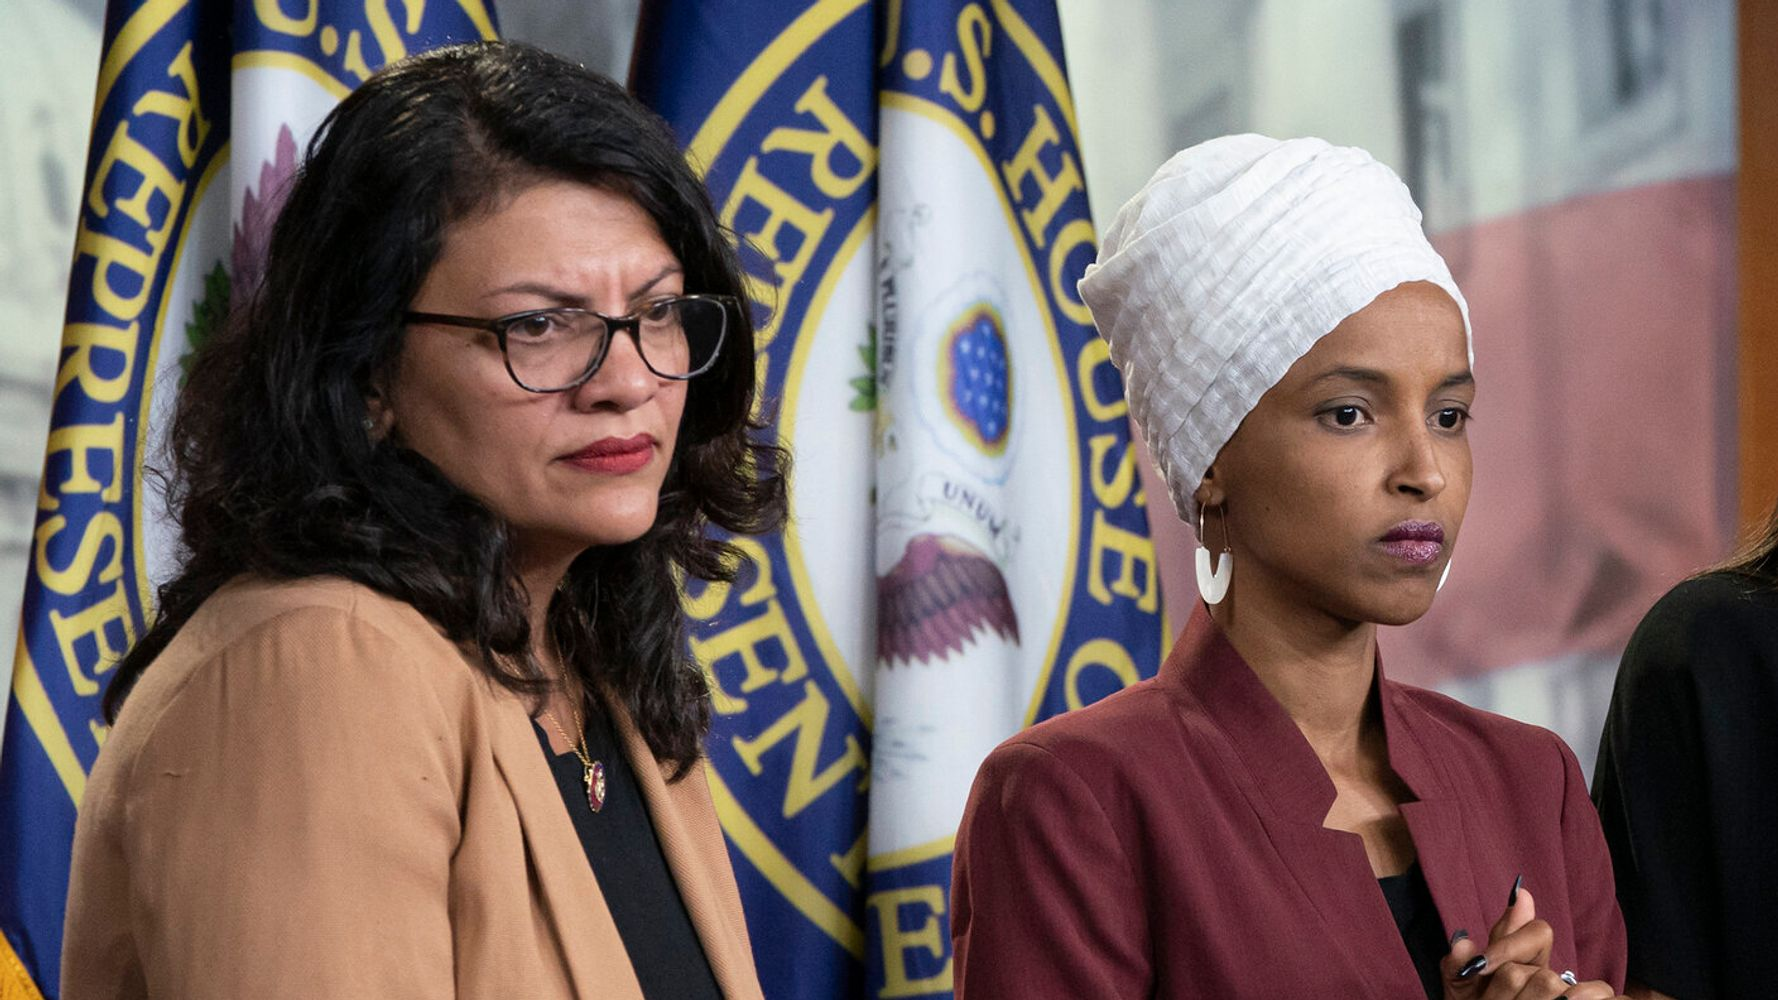 Westlake Legal Group 5d55415b2200003100f60718 Israel Bars Ilhan Omar, Rashida Tlaib From Entering Country Over BDS Support